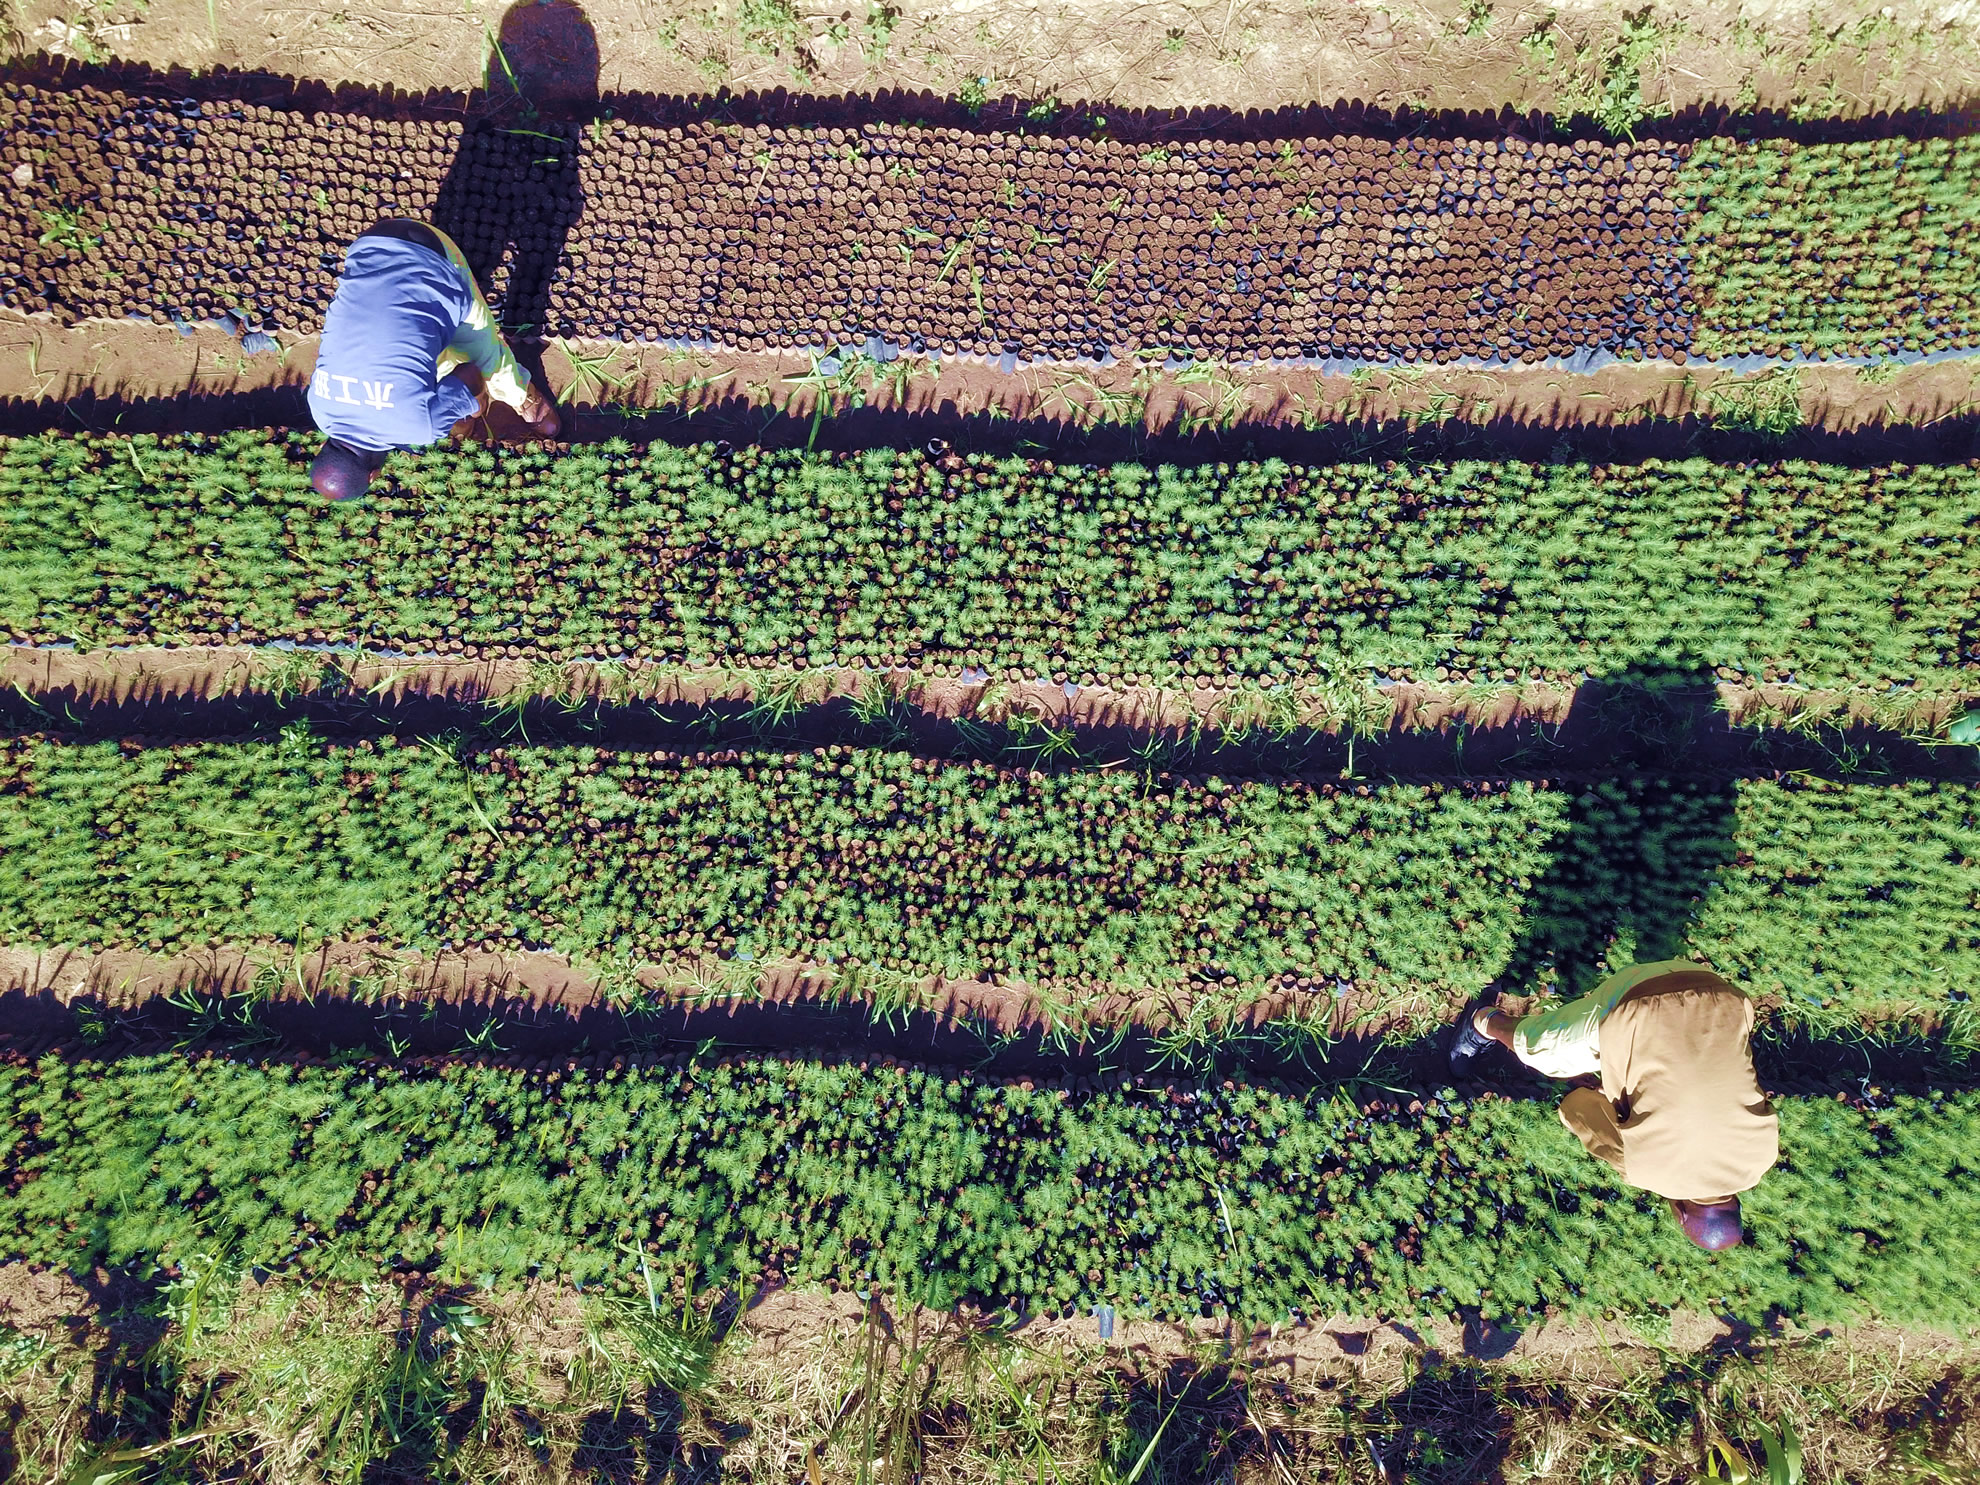 rows of seedlings at Lusangazi farm